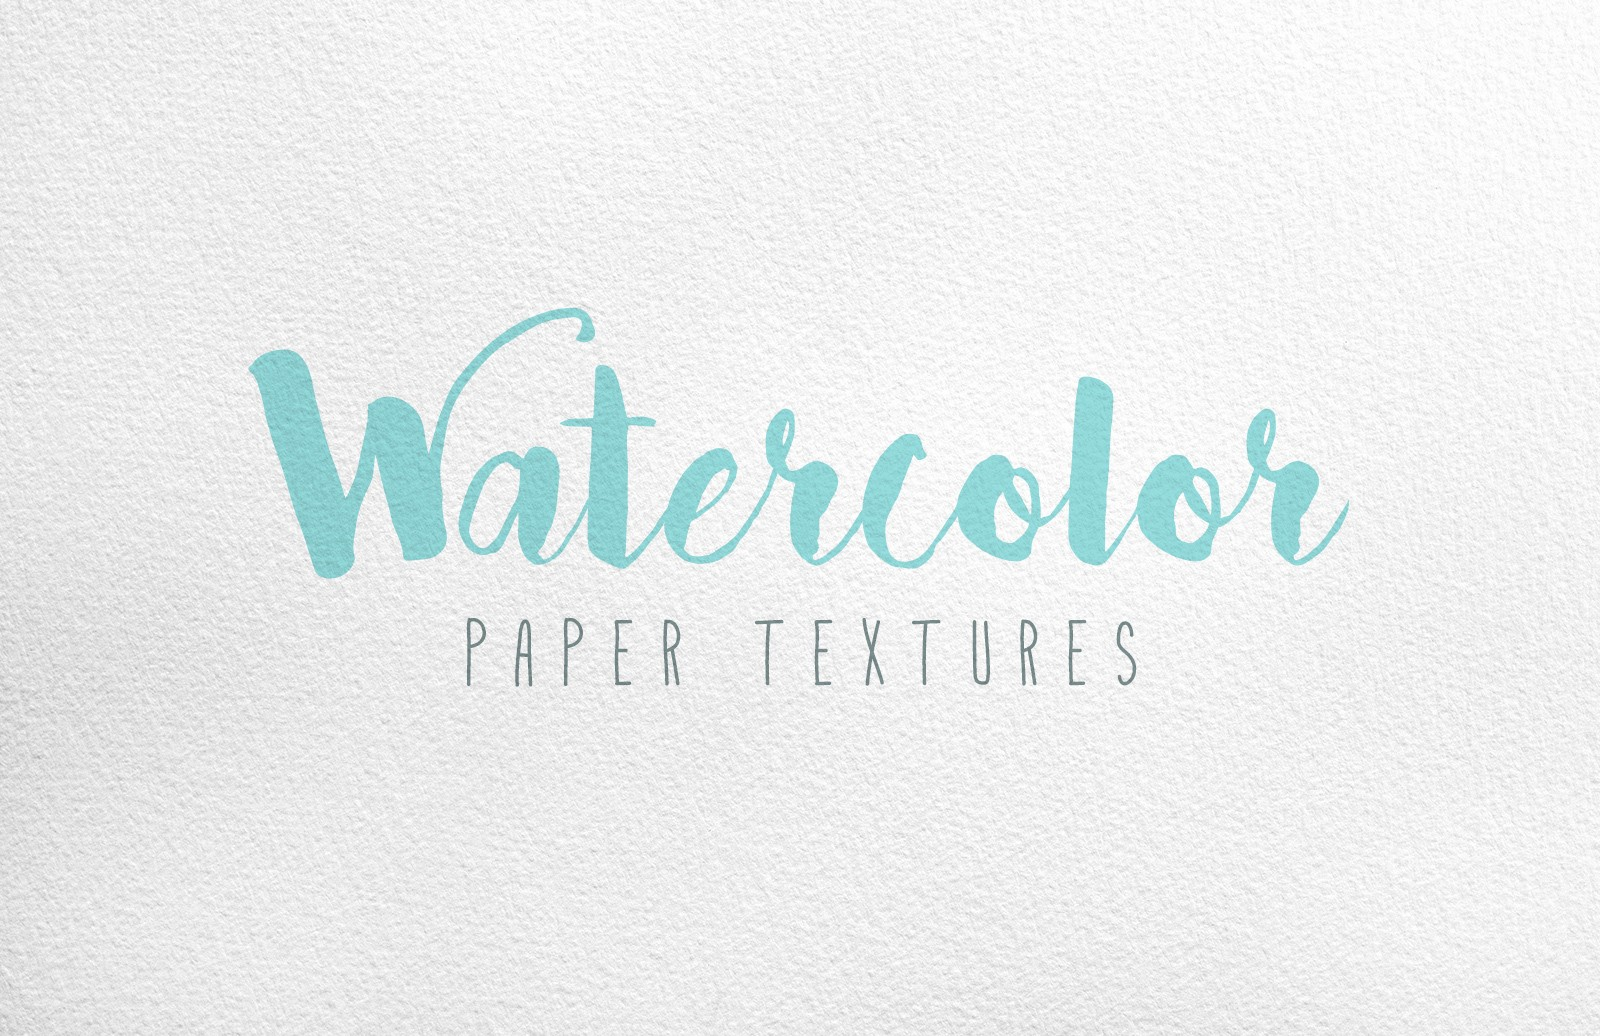 Large Watercolor Paper Textures Preview 1